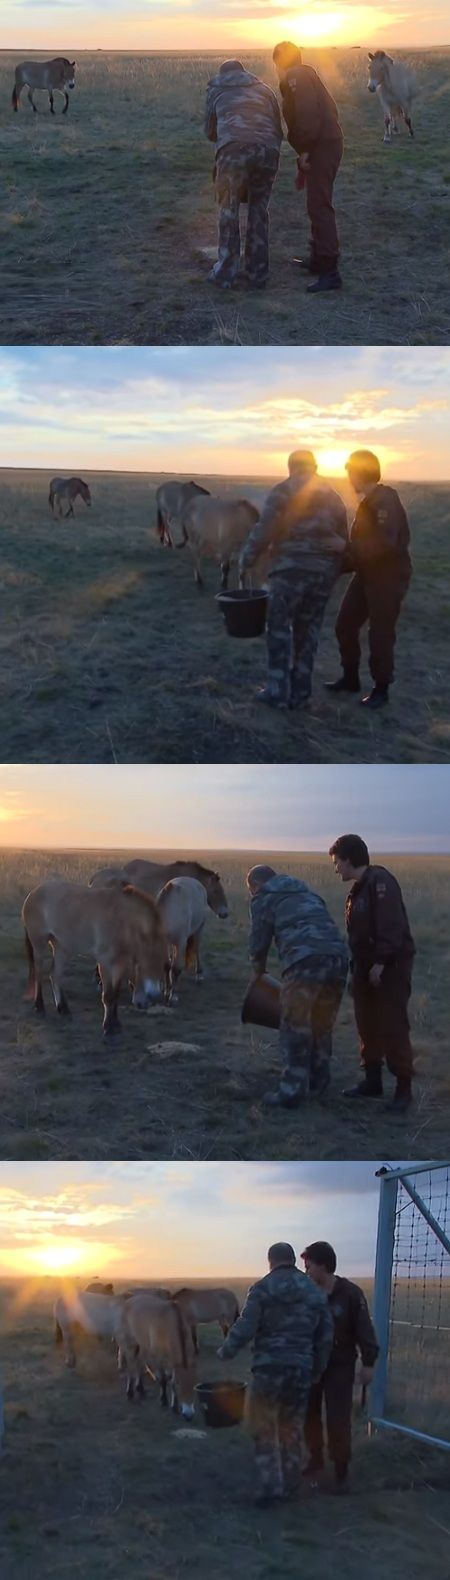 Putin Visits Reserve For Wild Horses And Sets 6 Of Them Free! (VIDEO) #putin #horses #wildlife #animals